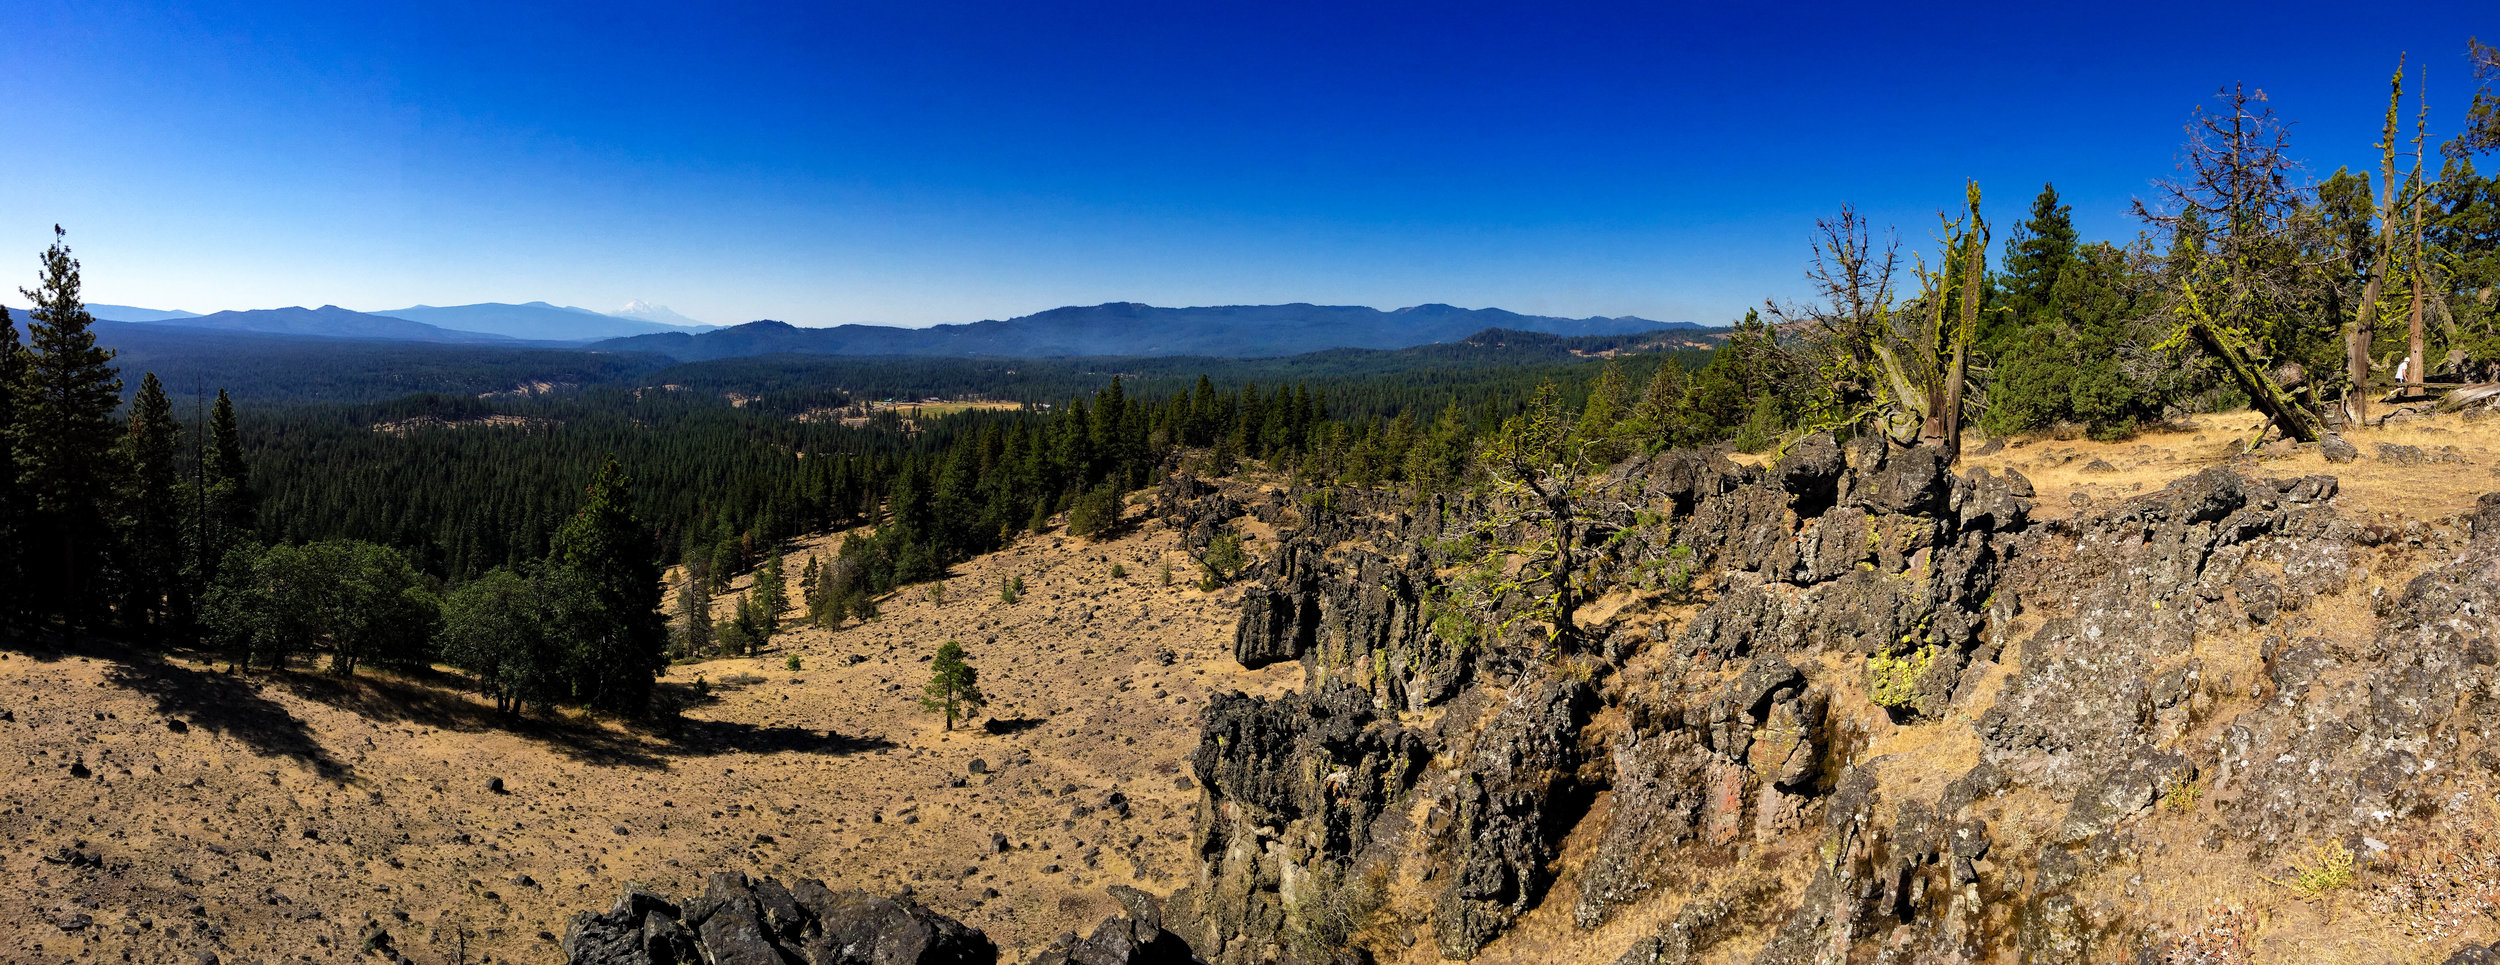 View from one of the hiking trails